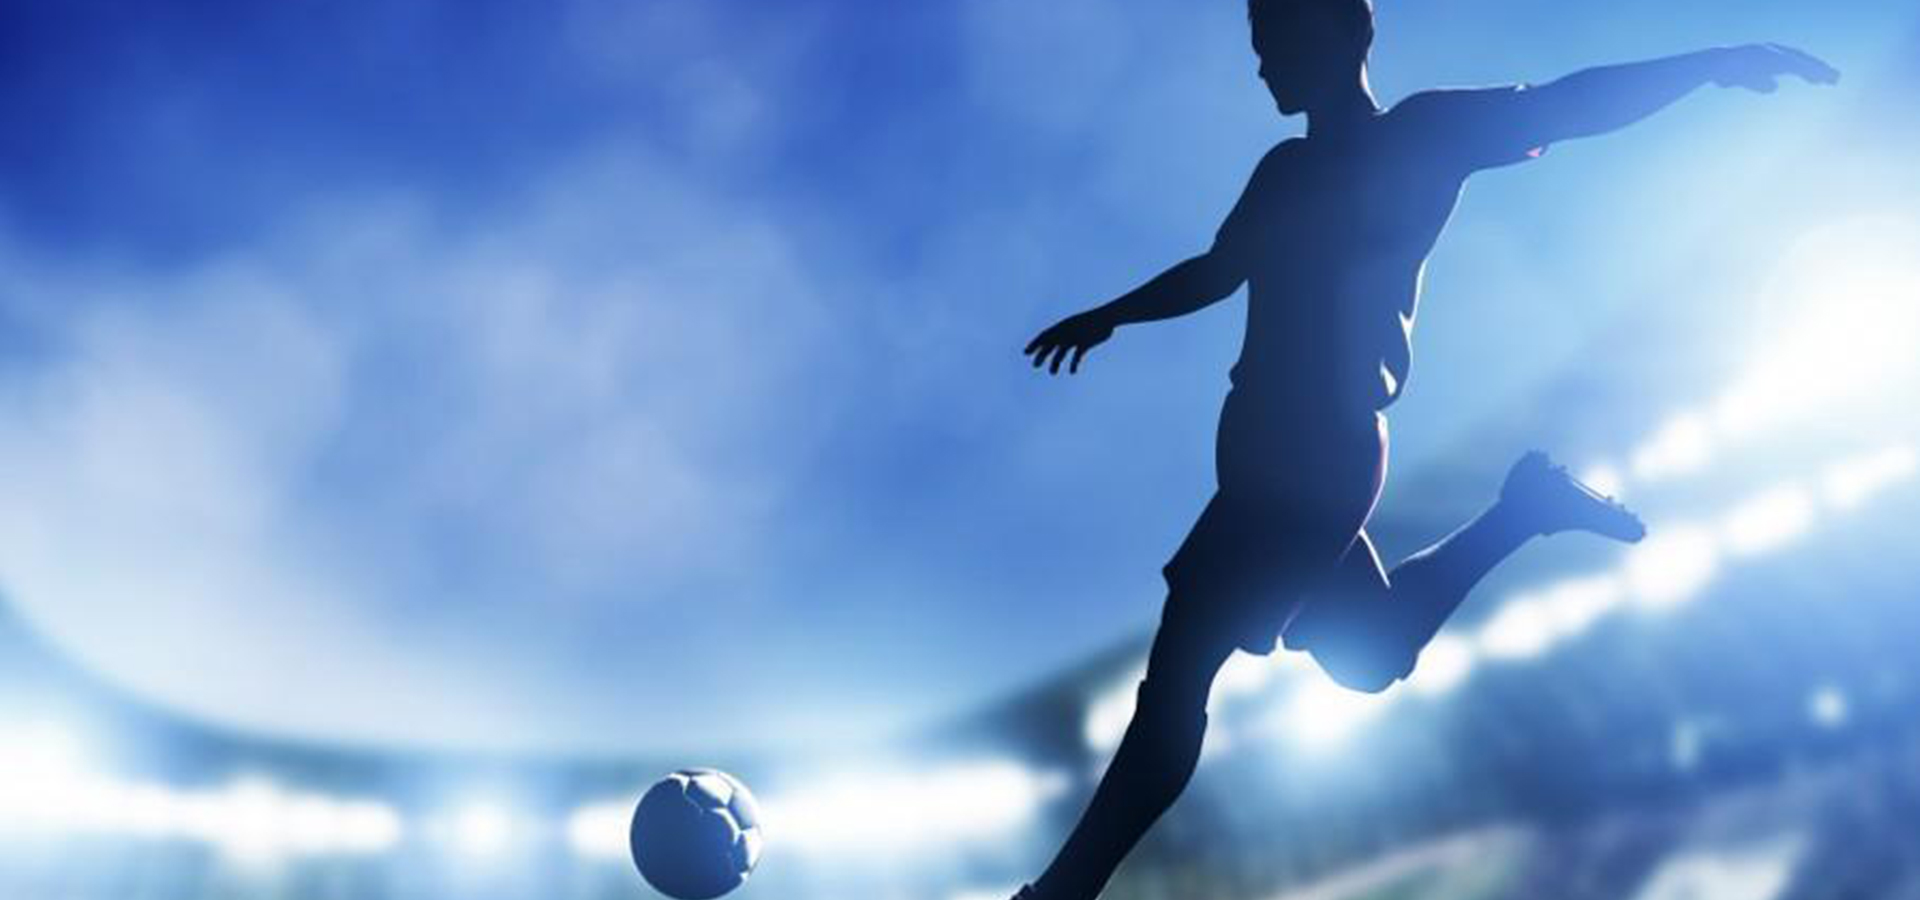 Falling Money 3d Wallpaper Football Background Play Football Athlete Background